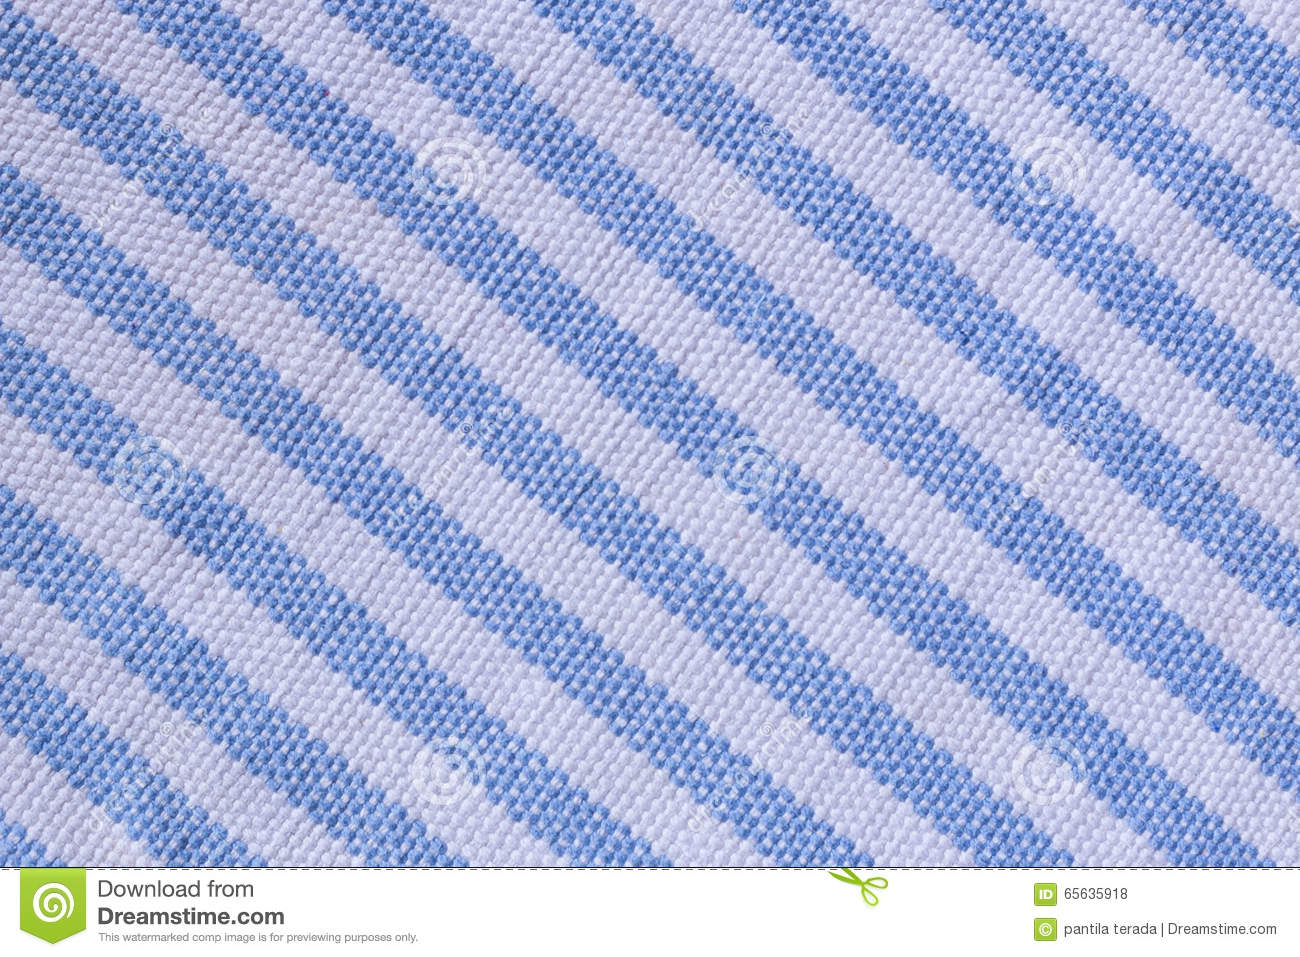 Texture of carpet white and blue background